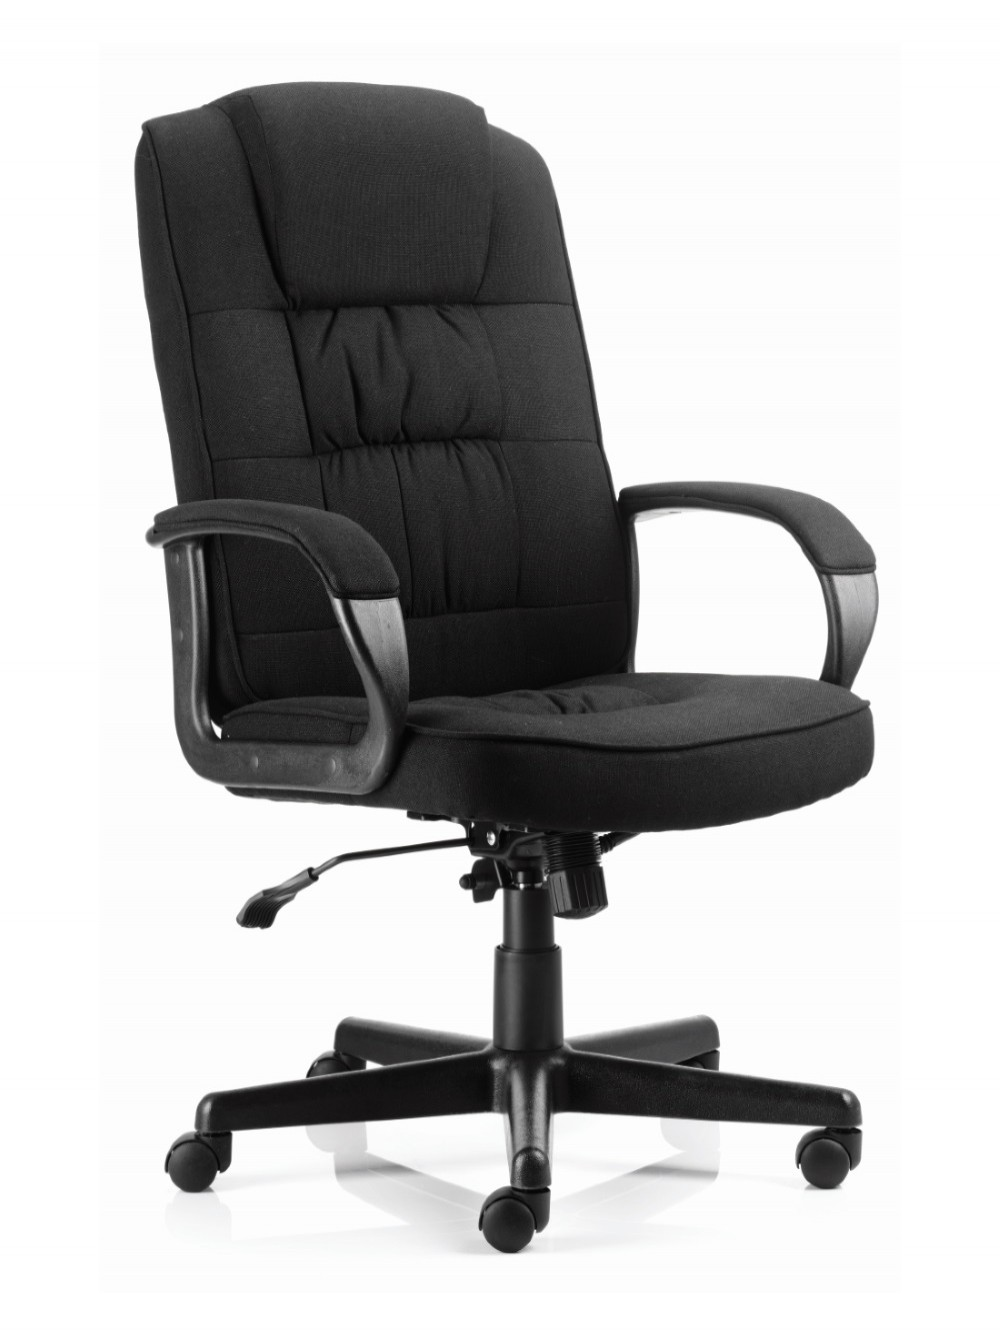 Dynamic Moore Executive Fabric Chair In Black 121 Office Furniture